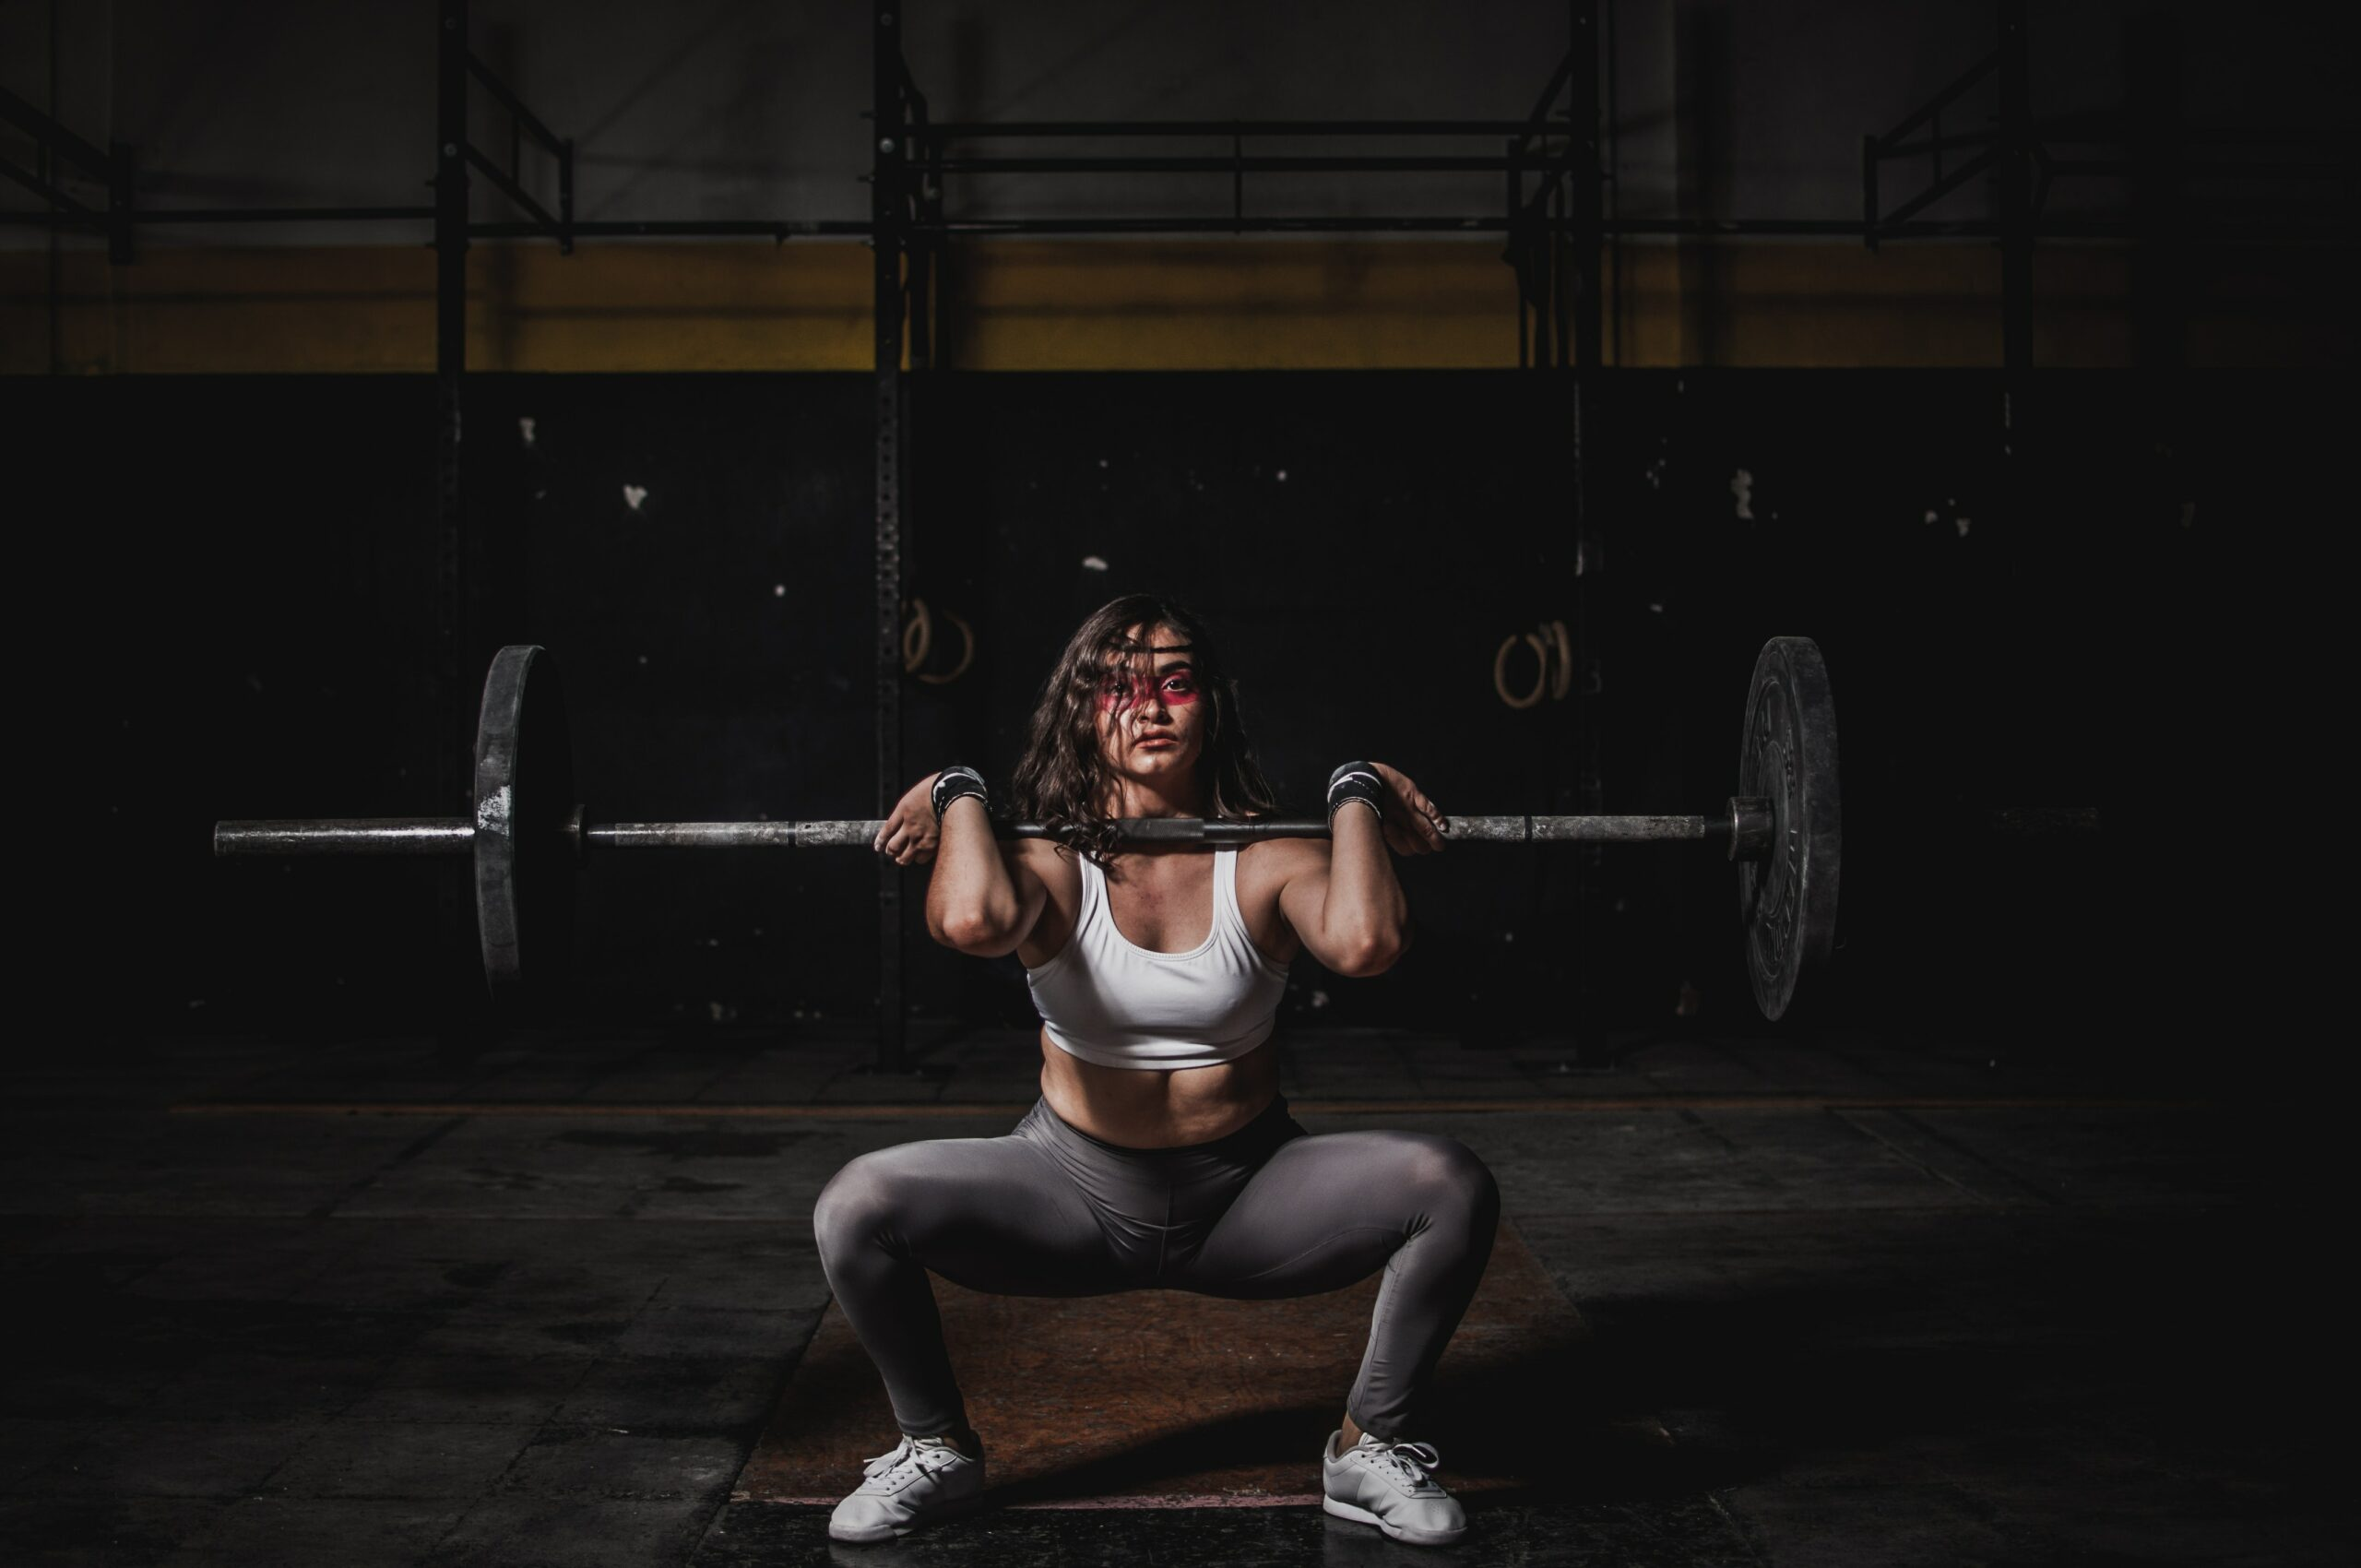 Rep ranges for resistance training – an introduction